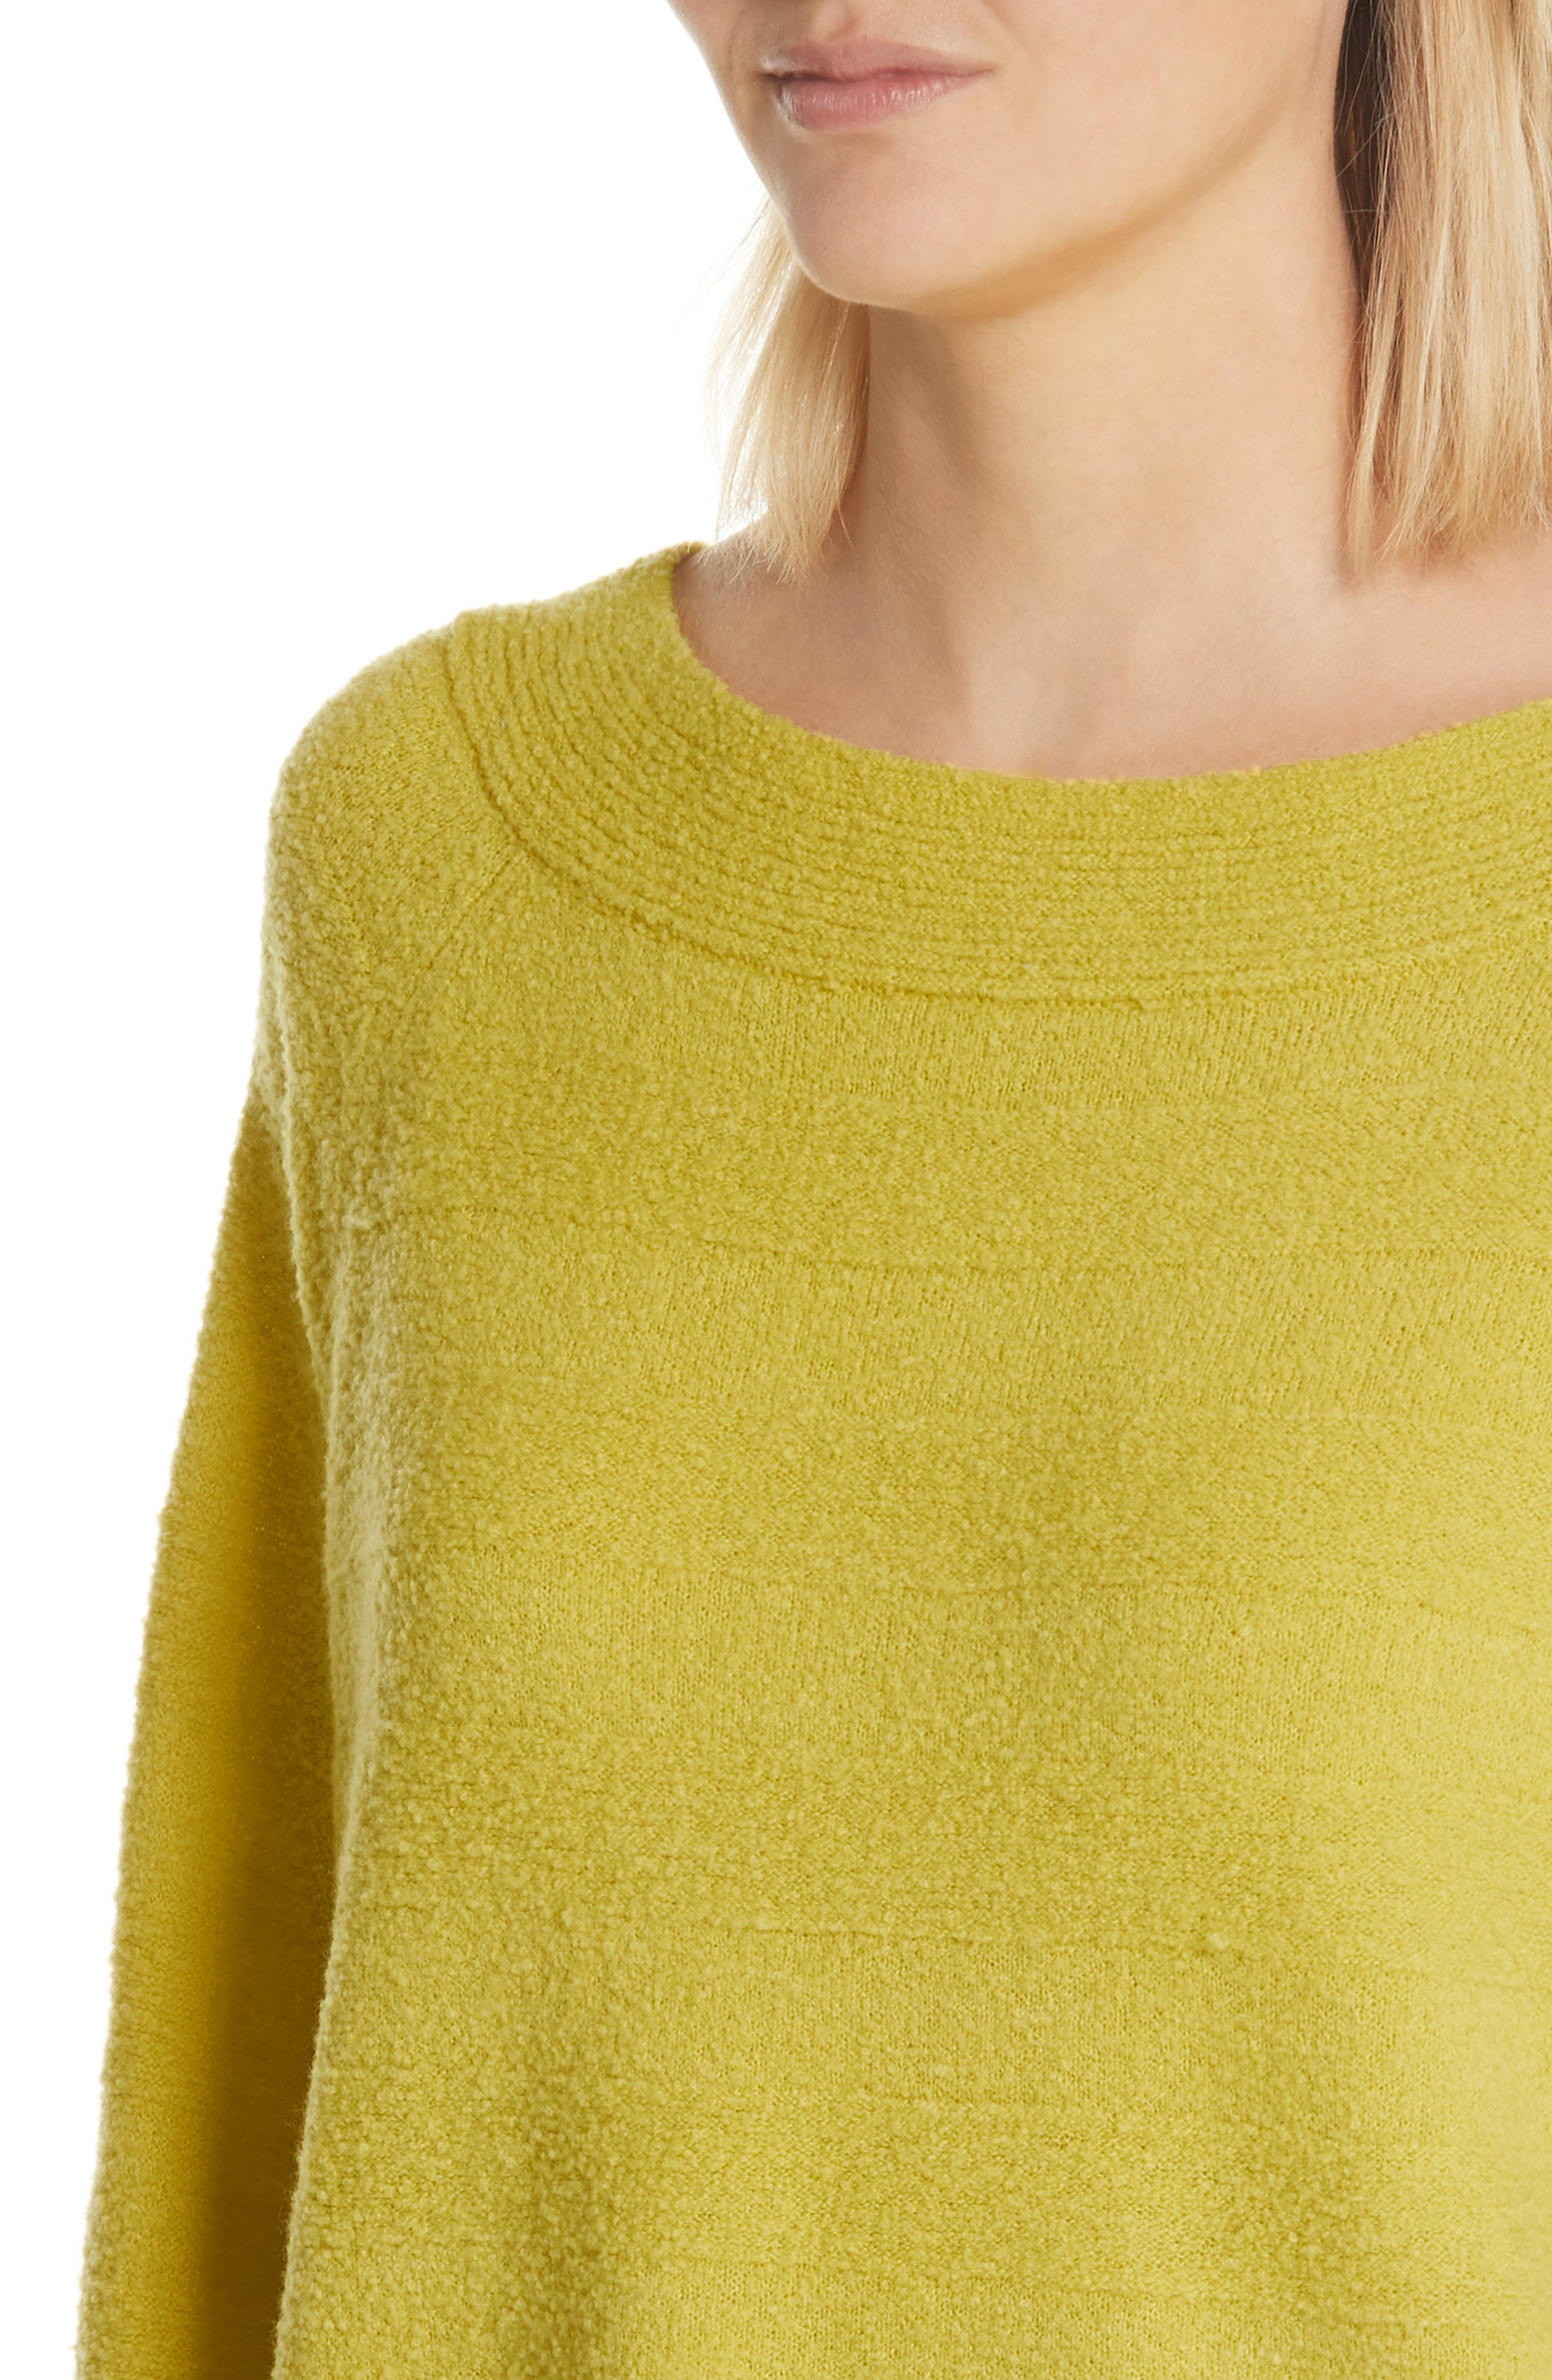 Merino Wool Blend Knit Sweater,                             Alternate thumbnail 4, color,                             750